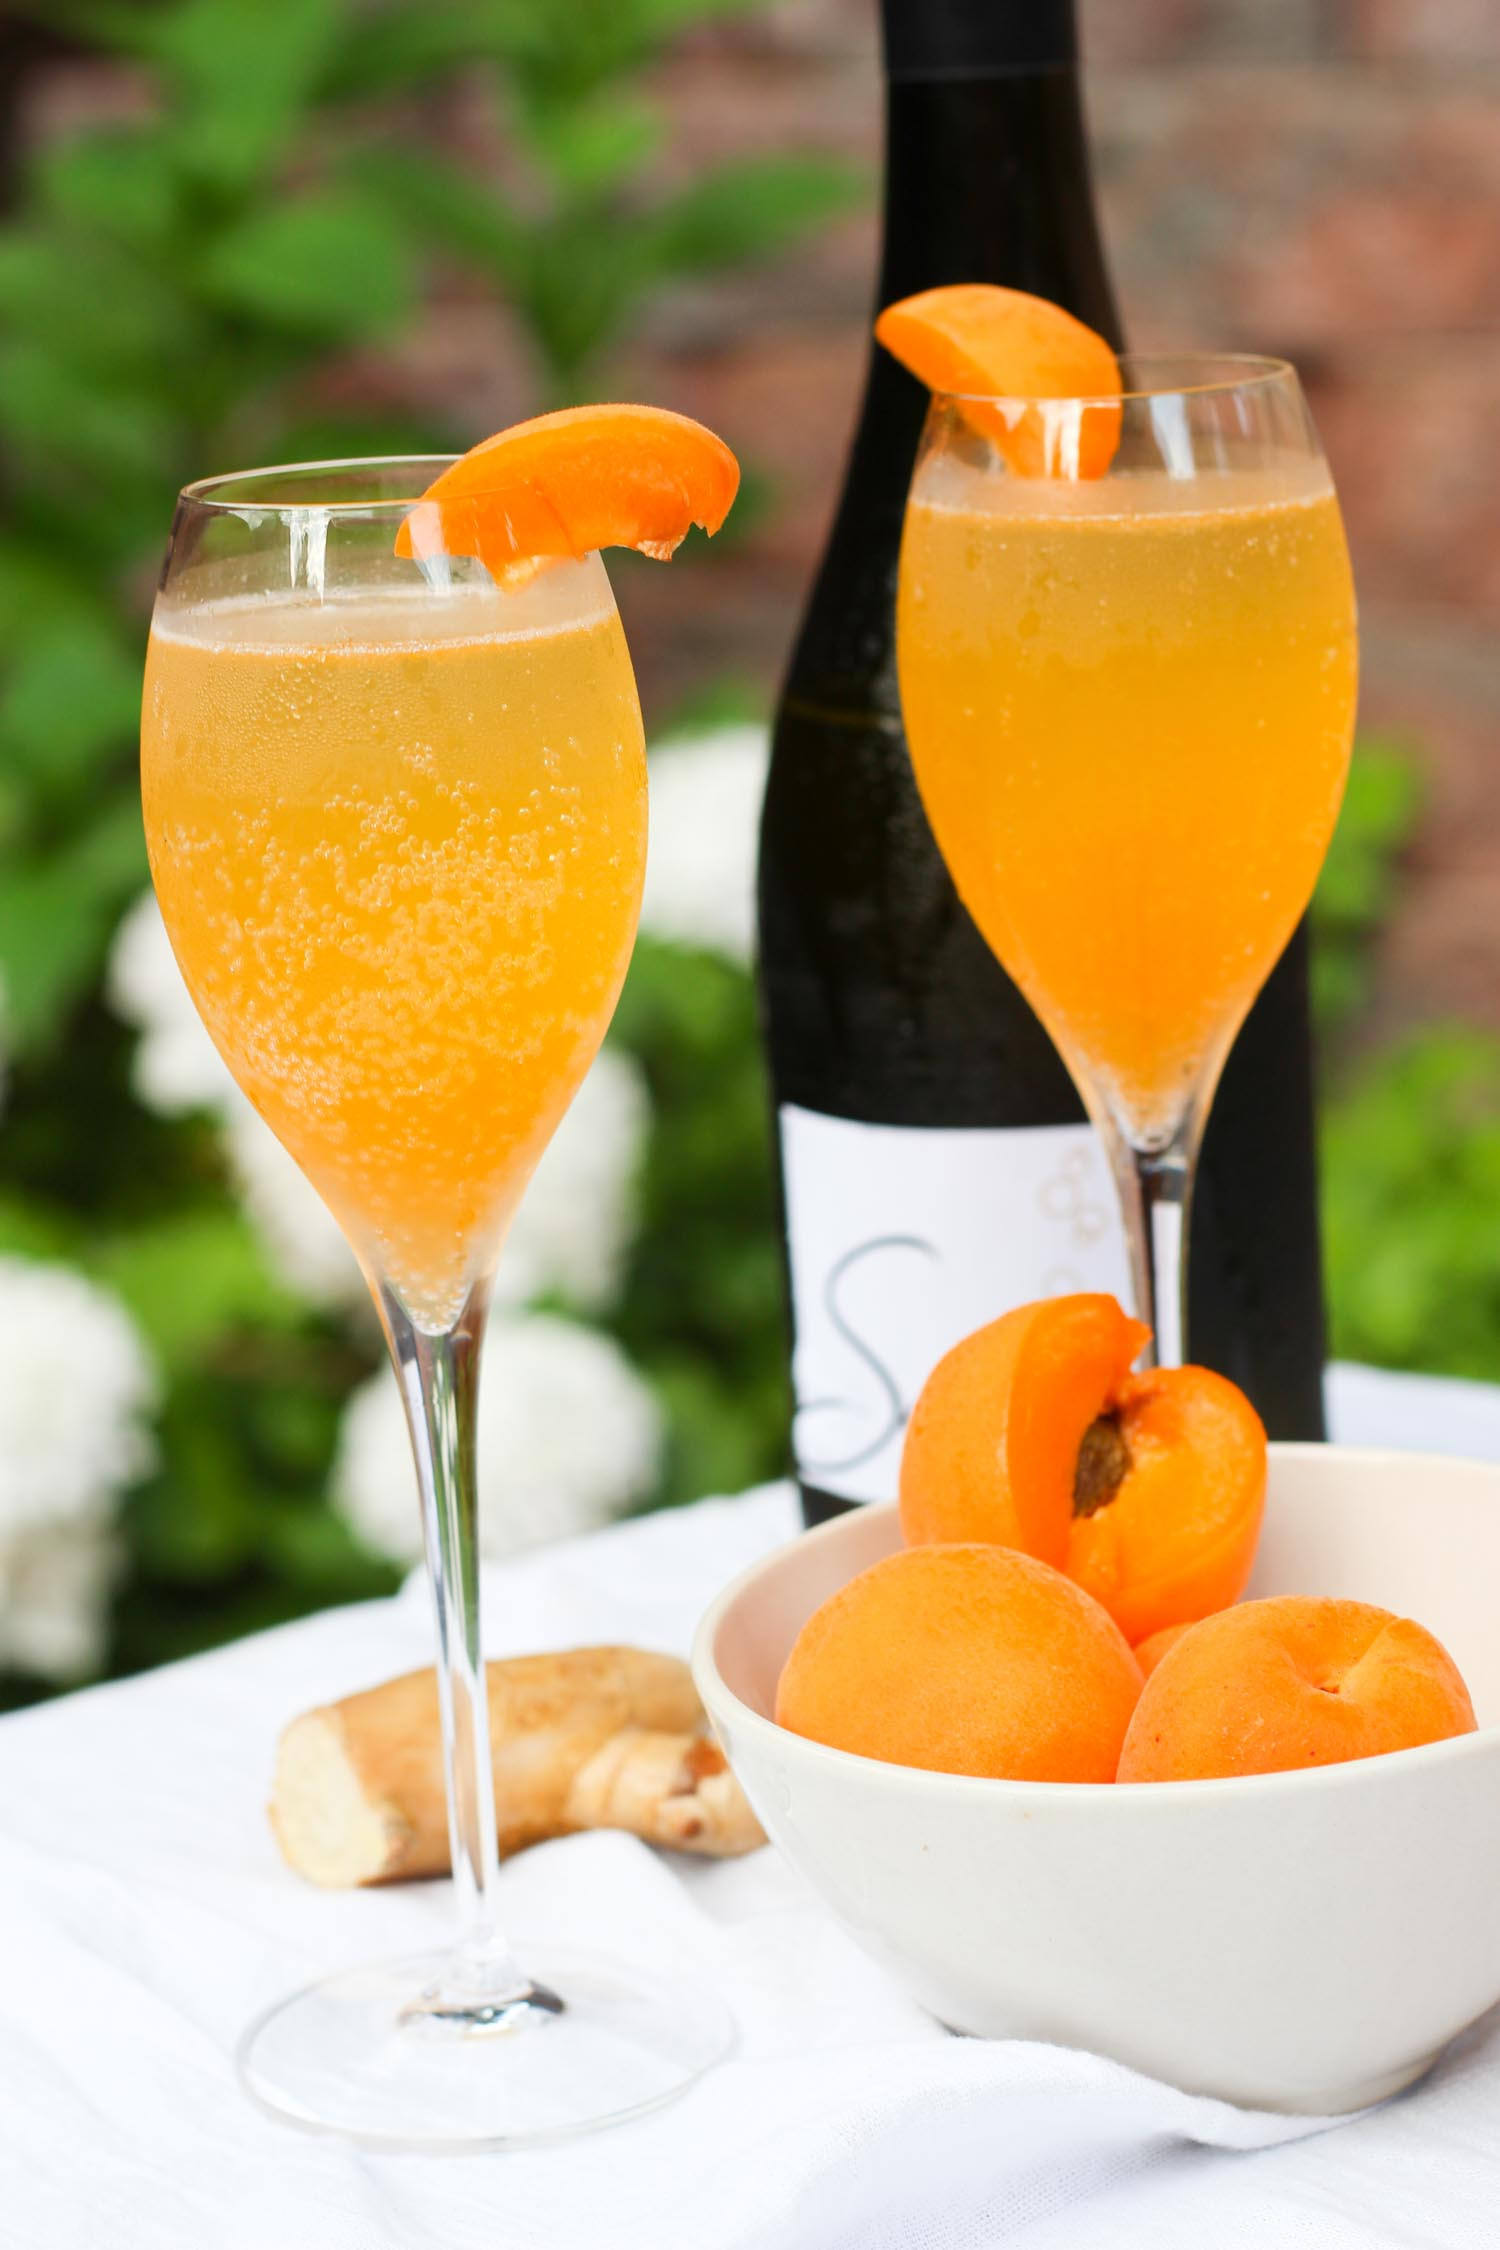 Breakfast Alcoholic Drinks  9 Fun Ways To Down Alcohol At Breakfast